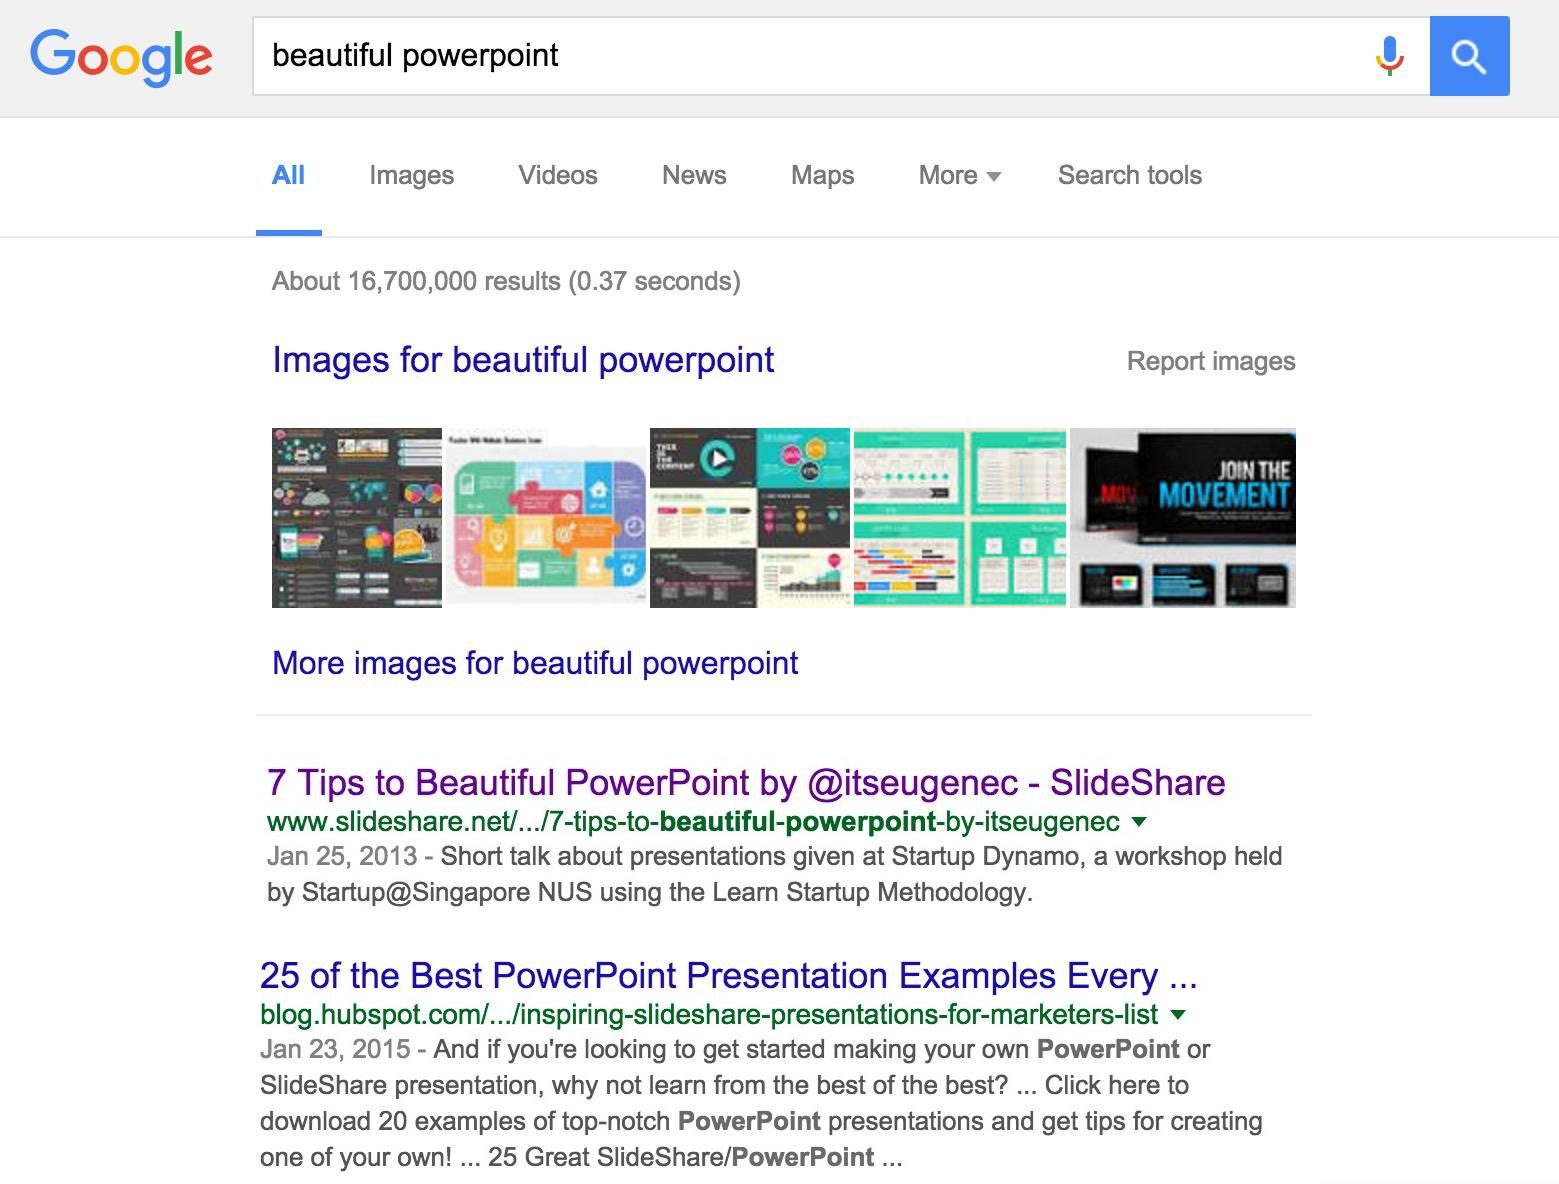 beautiful-powerpoint-SERPs